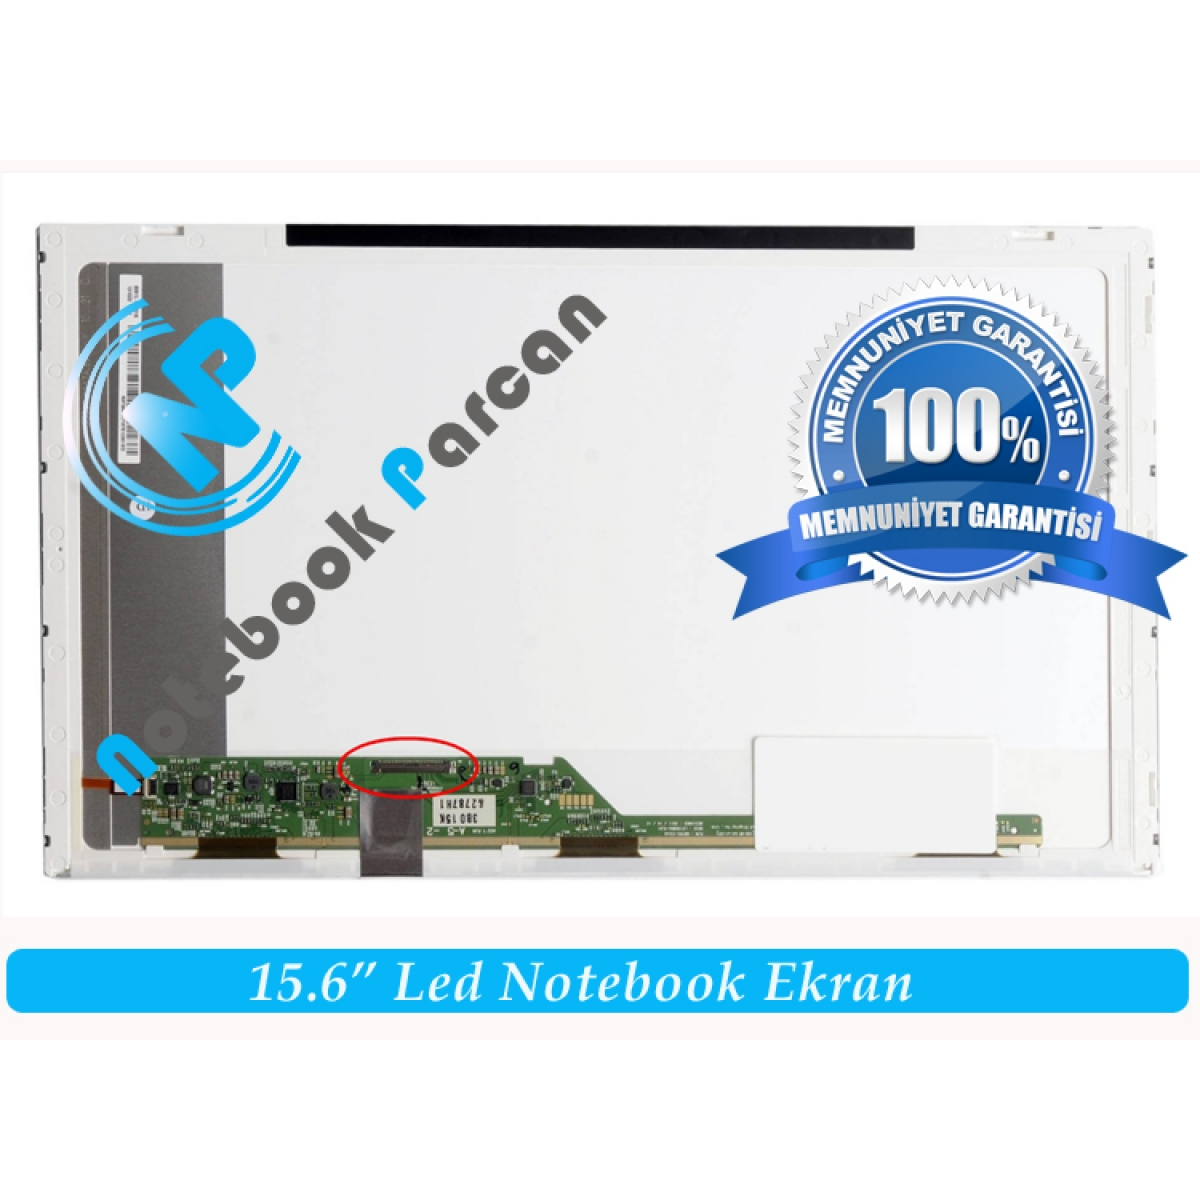 Toshiba Satellite C655-S5092 Ekran 15.6 Led Pan